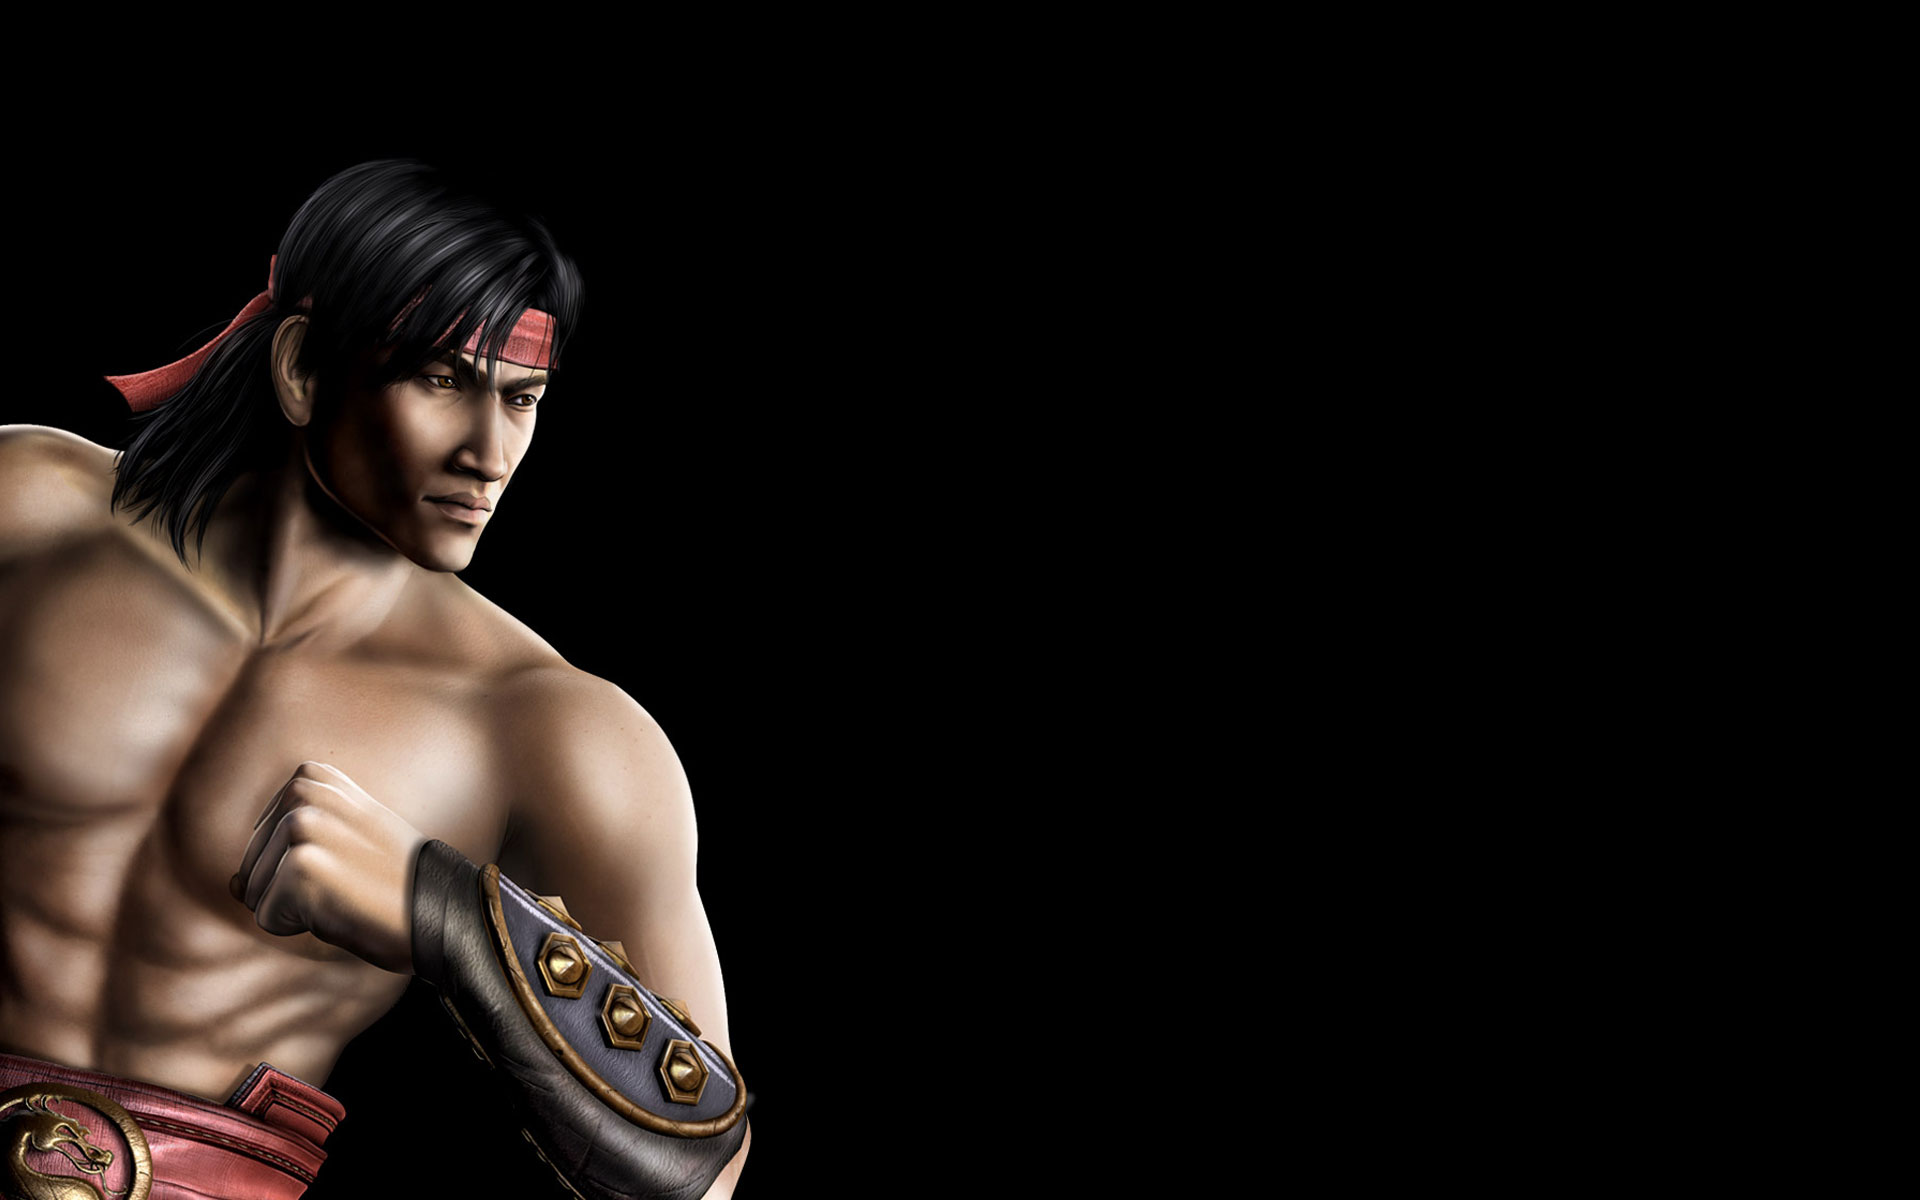 Games Wallpapers   Mortal Kombat 9 Liu Kang wallpaper 1920x1200